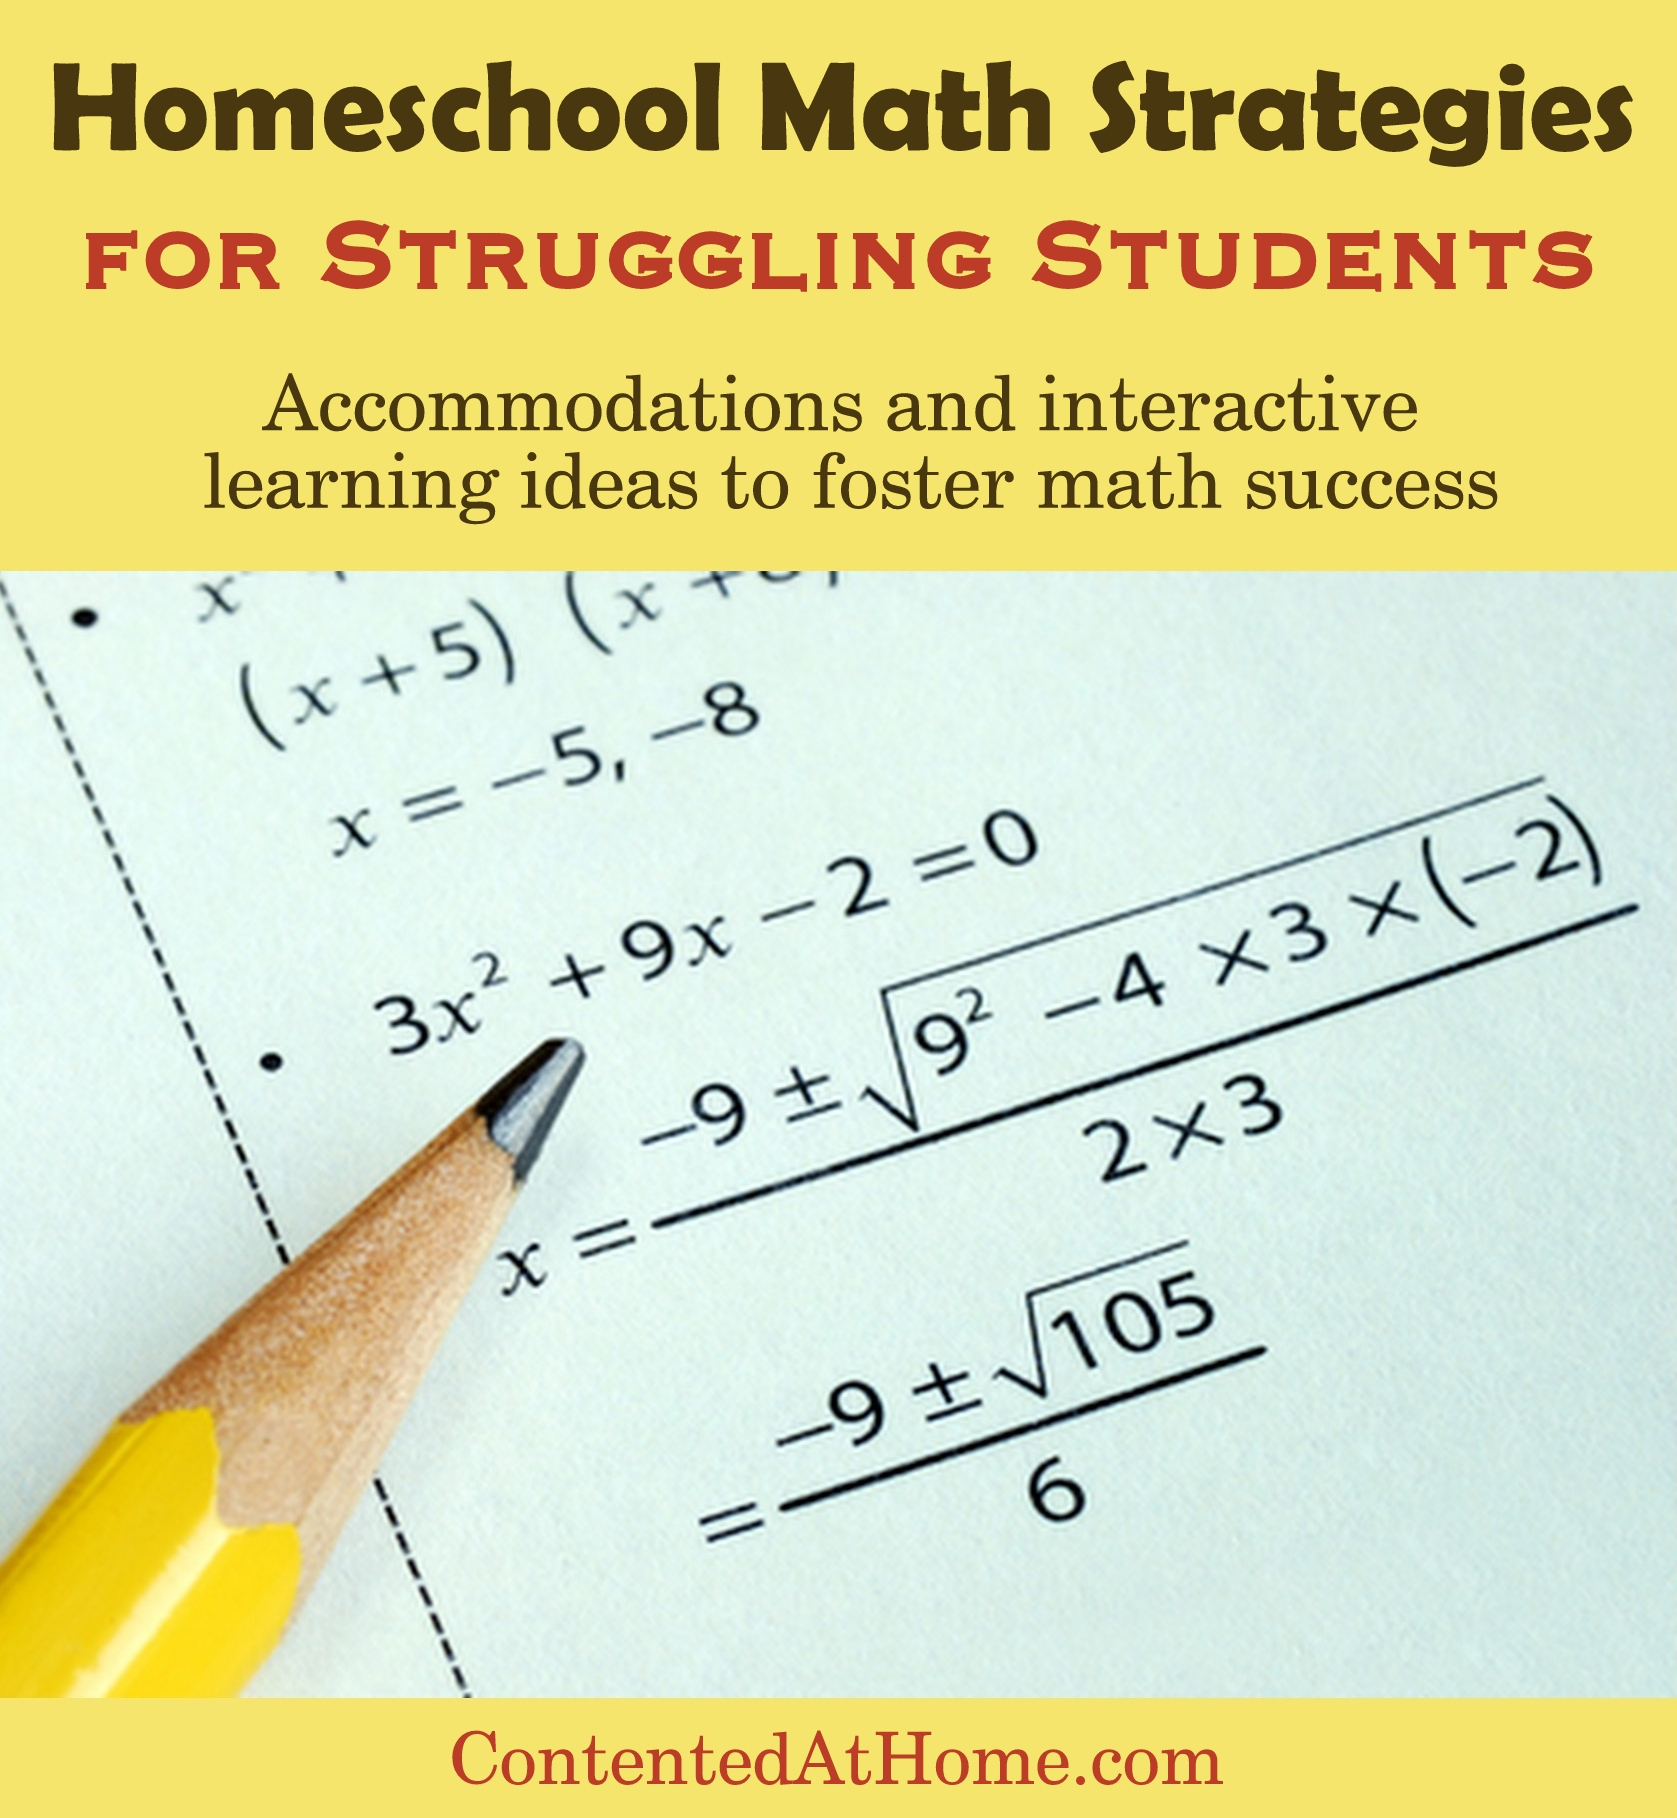 Interactive Homeschool Math Curriculum | Contented at Home